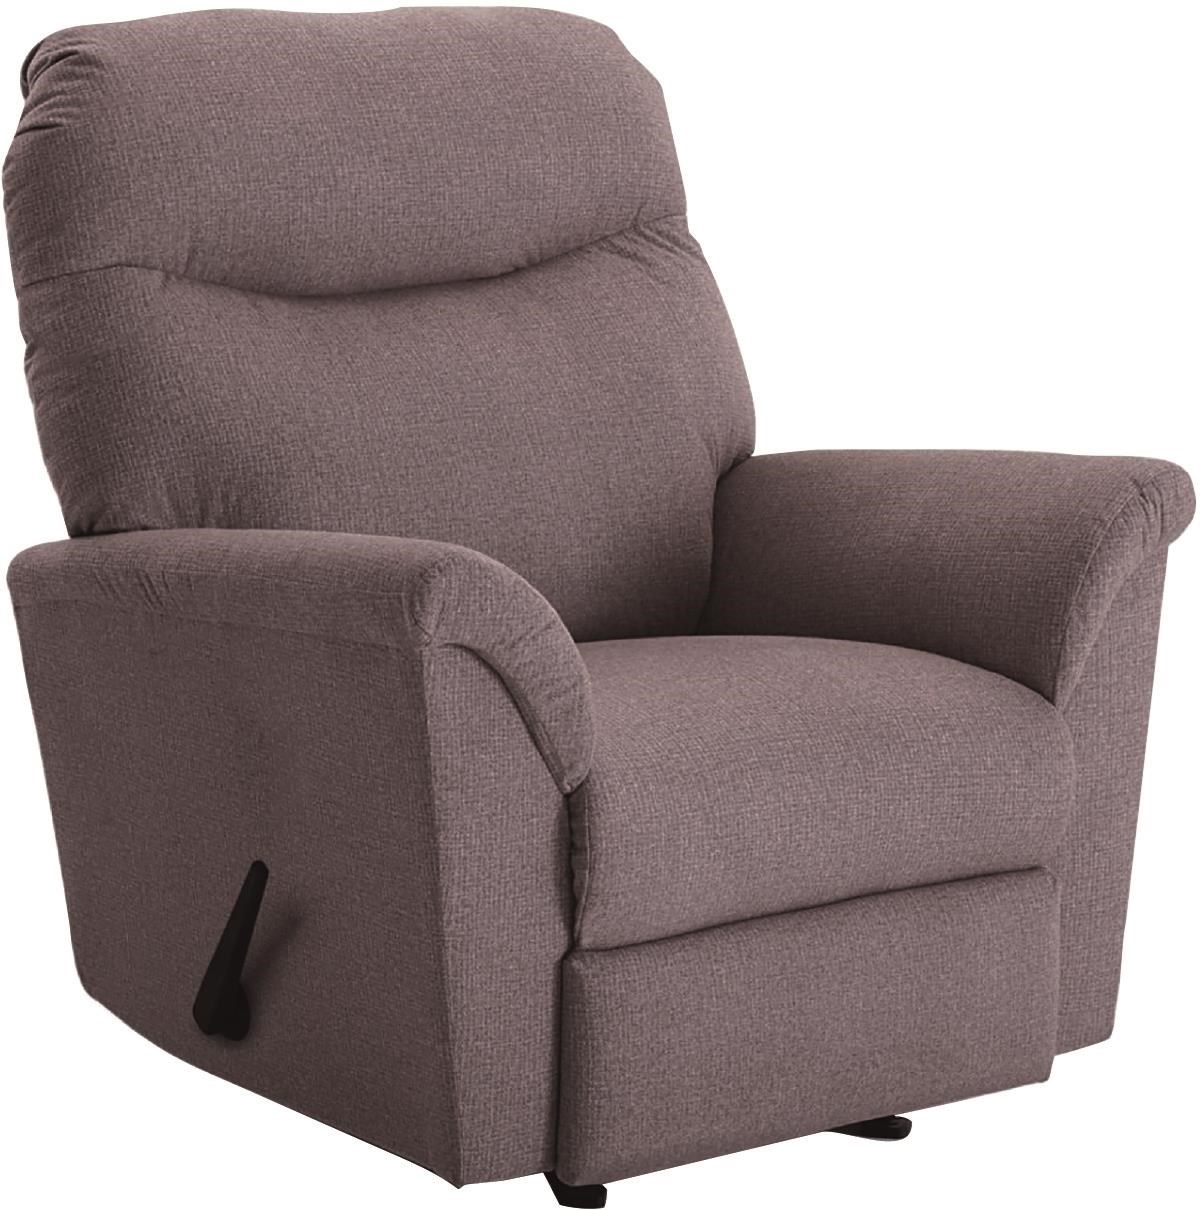 Caitlin Rocker Recliner by Best Home Furnishings at Darvin Furniture